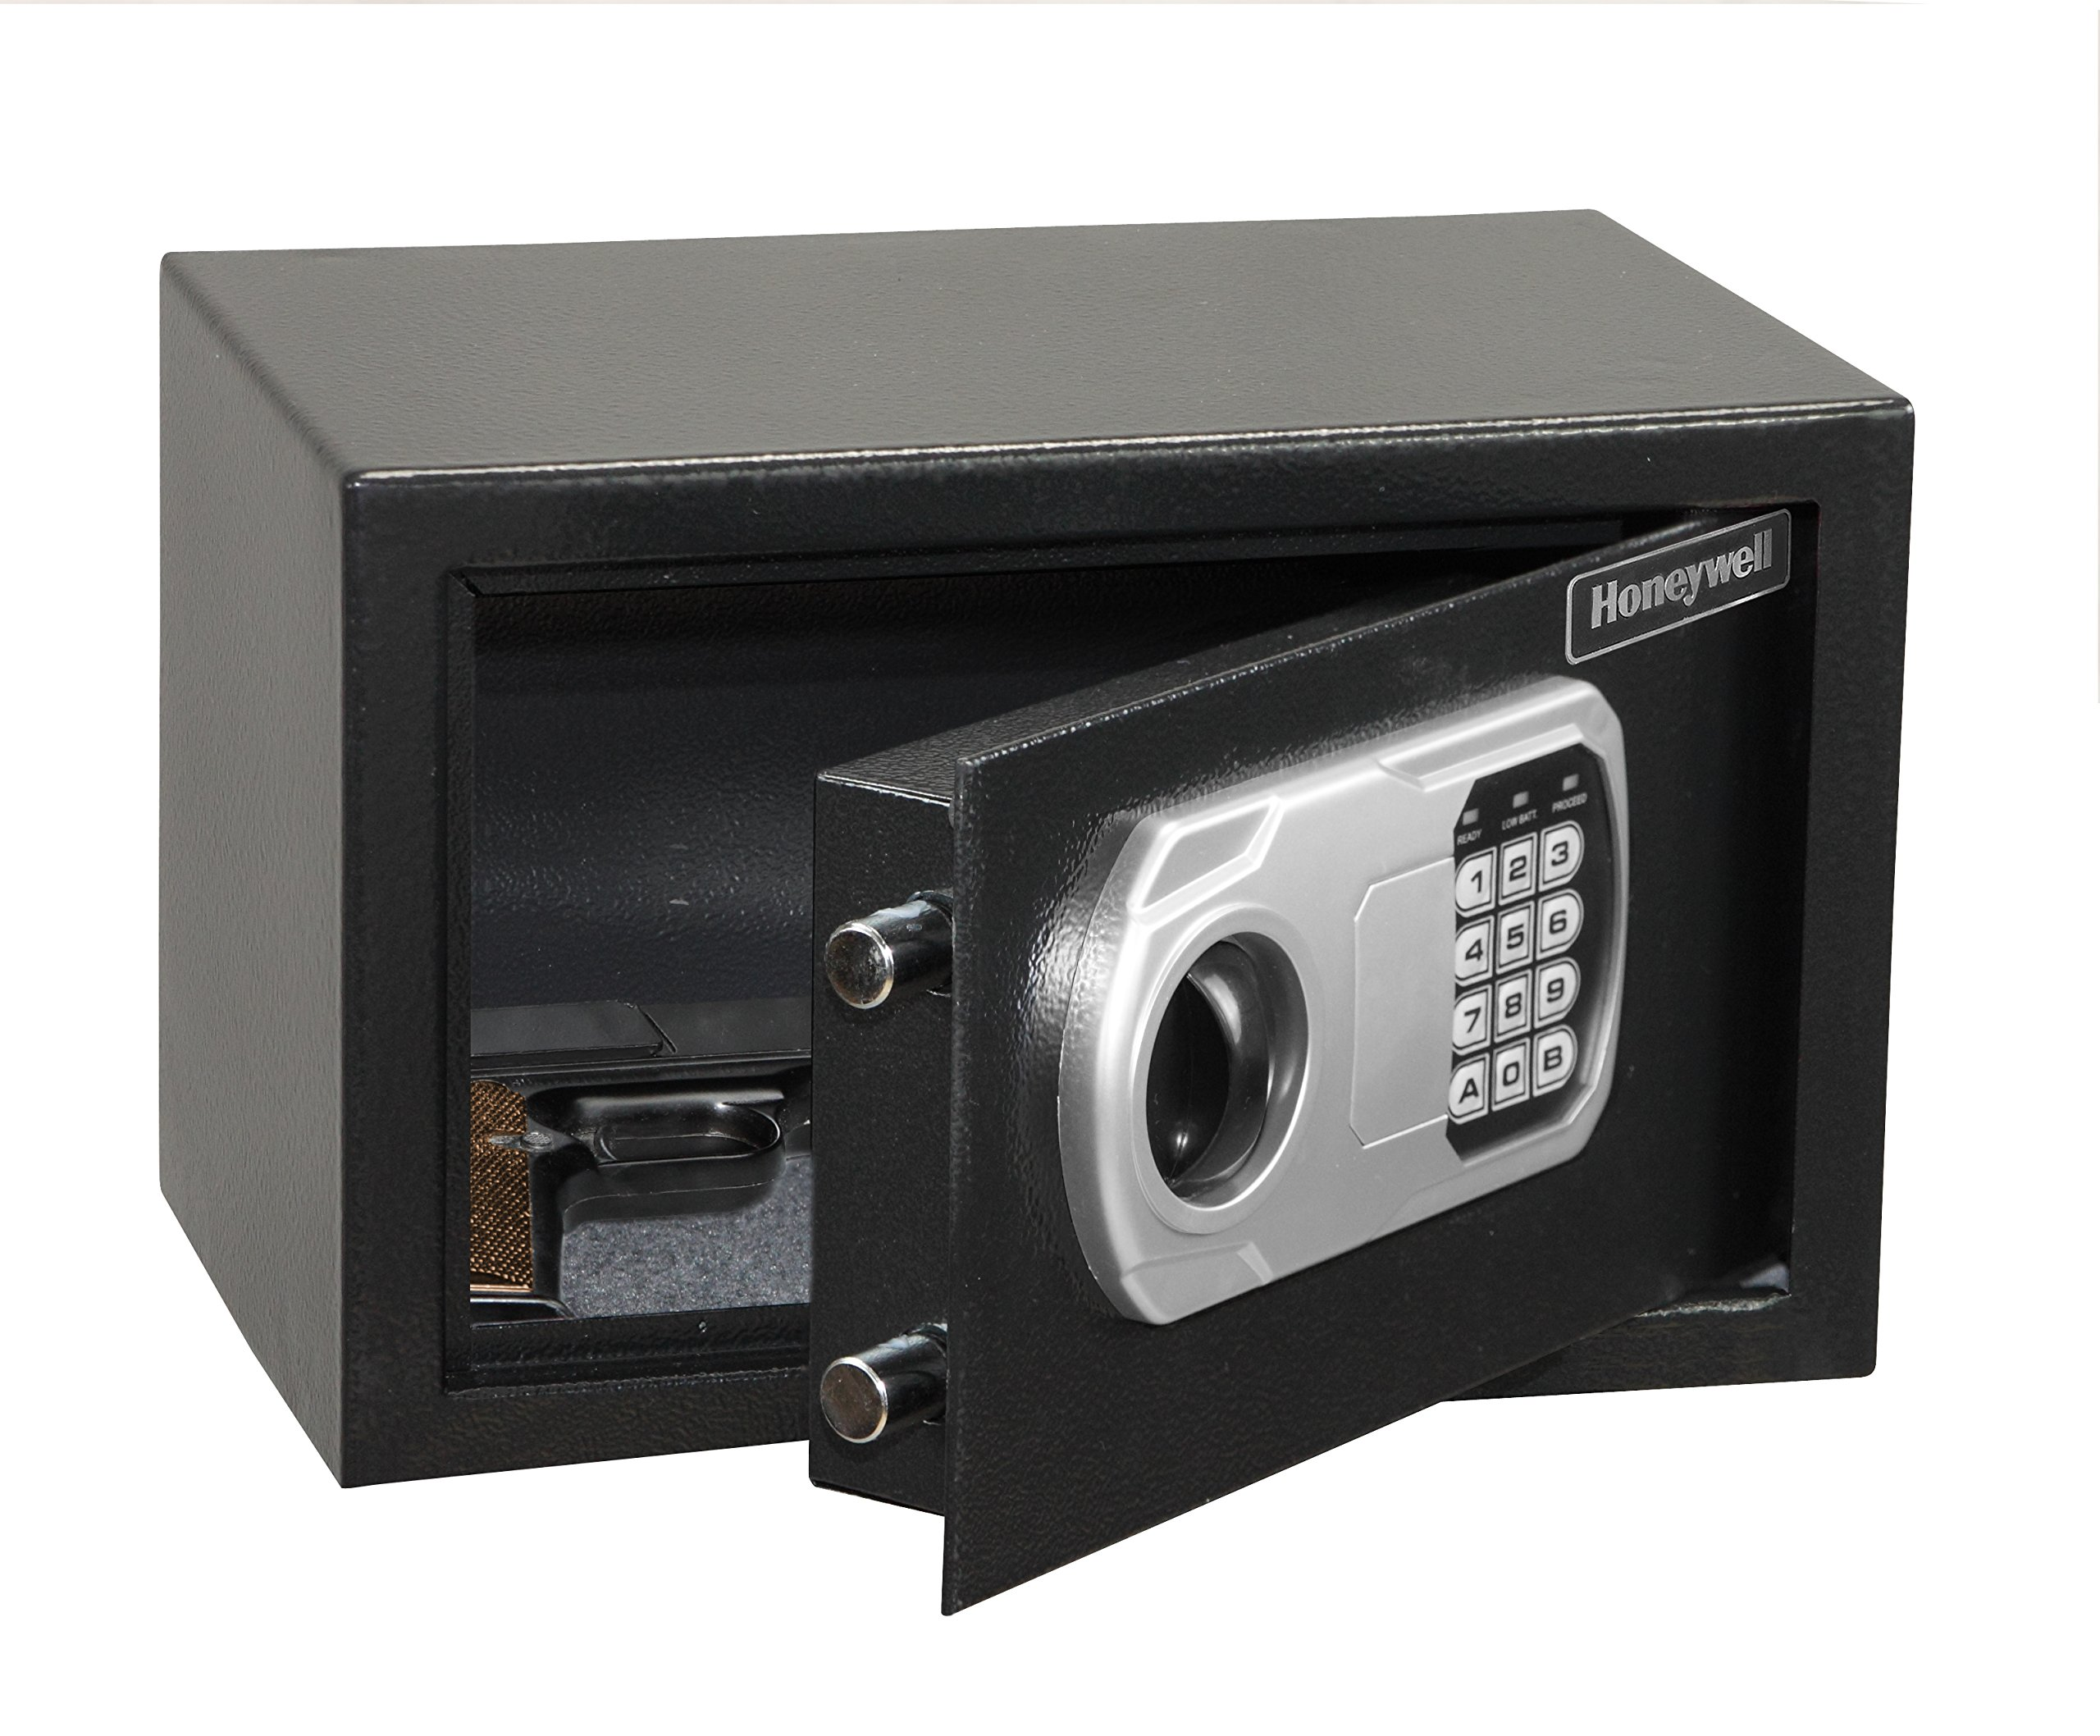 HONEYWELL - 5101DOJ Approved Small Security Safe with Digital Lock, 0.27-Cubic Feet, Black by Honeywell Safes & Door Locks (Image #3)